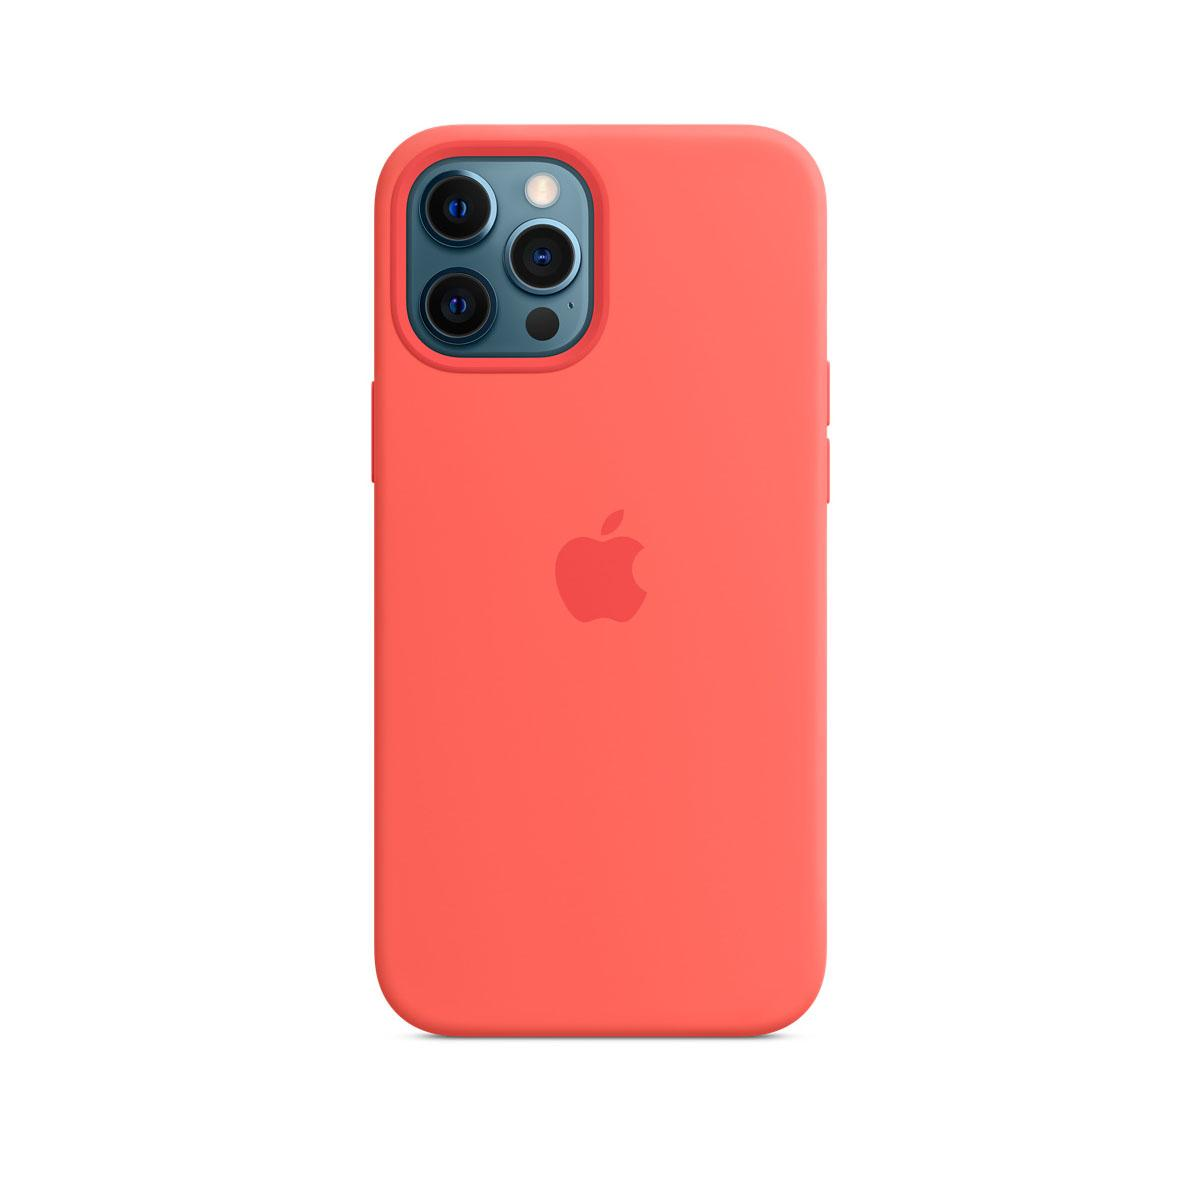 iPhone 12 Pro Max Magsafe Silicone Case - Pink